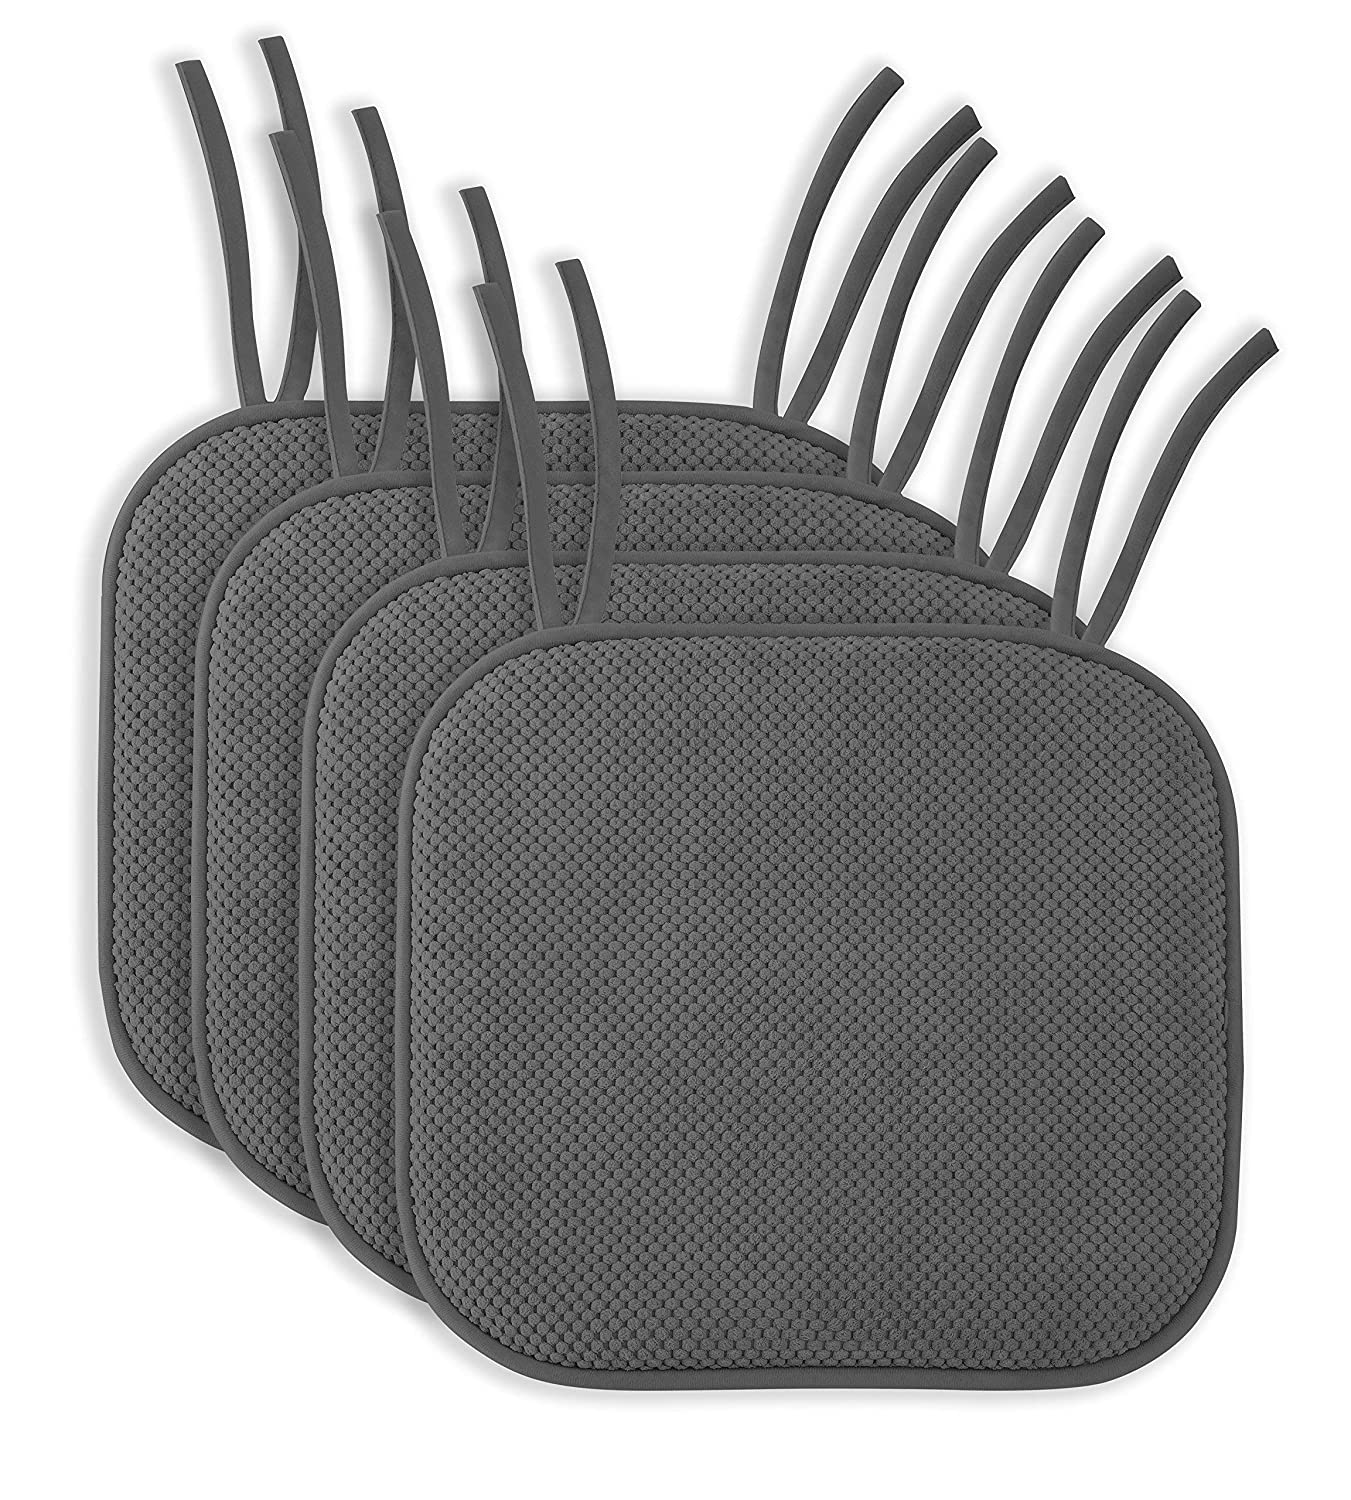 "4 Pack: Ellington Home Non Slip Memory Foam Seat Cushion Chair Pads with Ties - 17"" x 16"" - Grey"